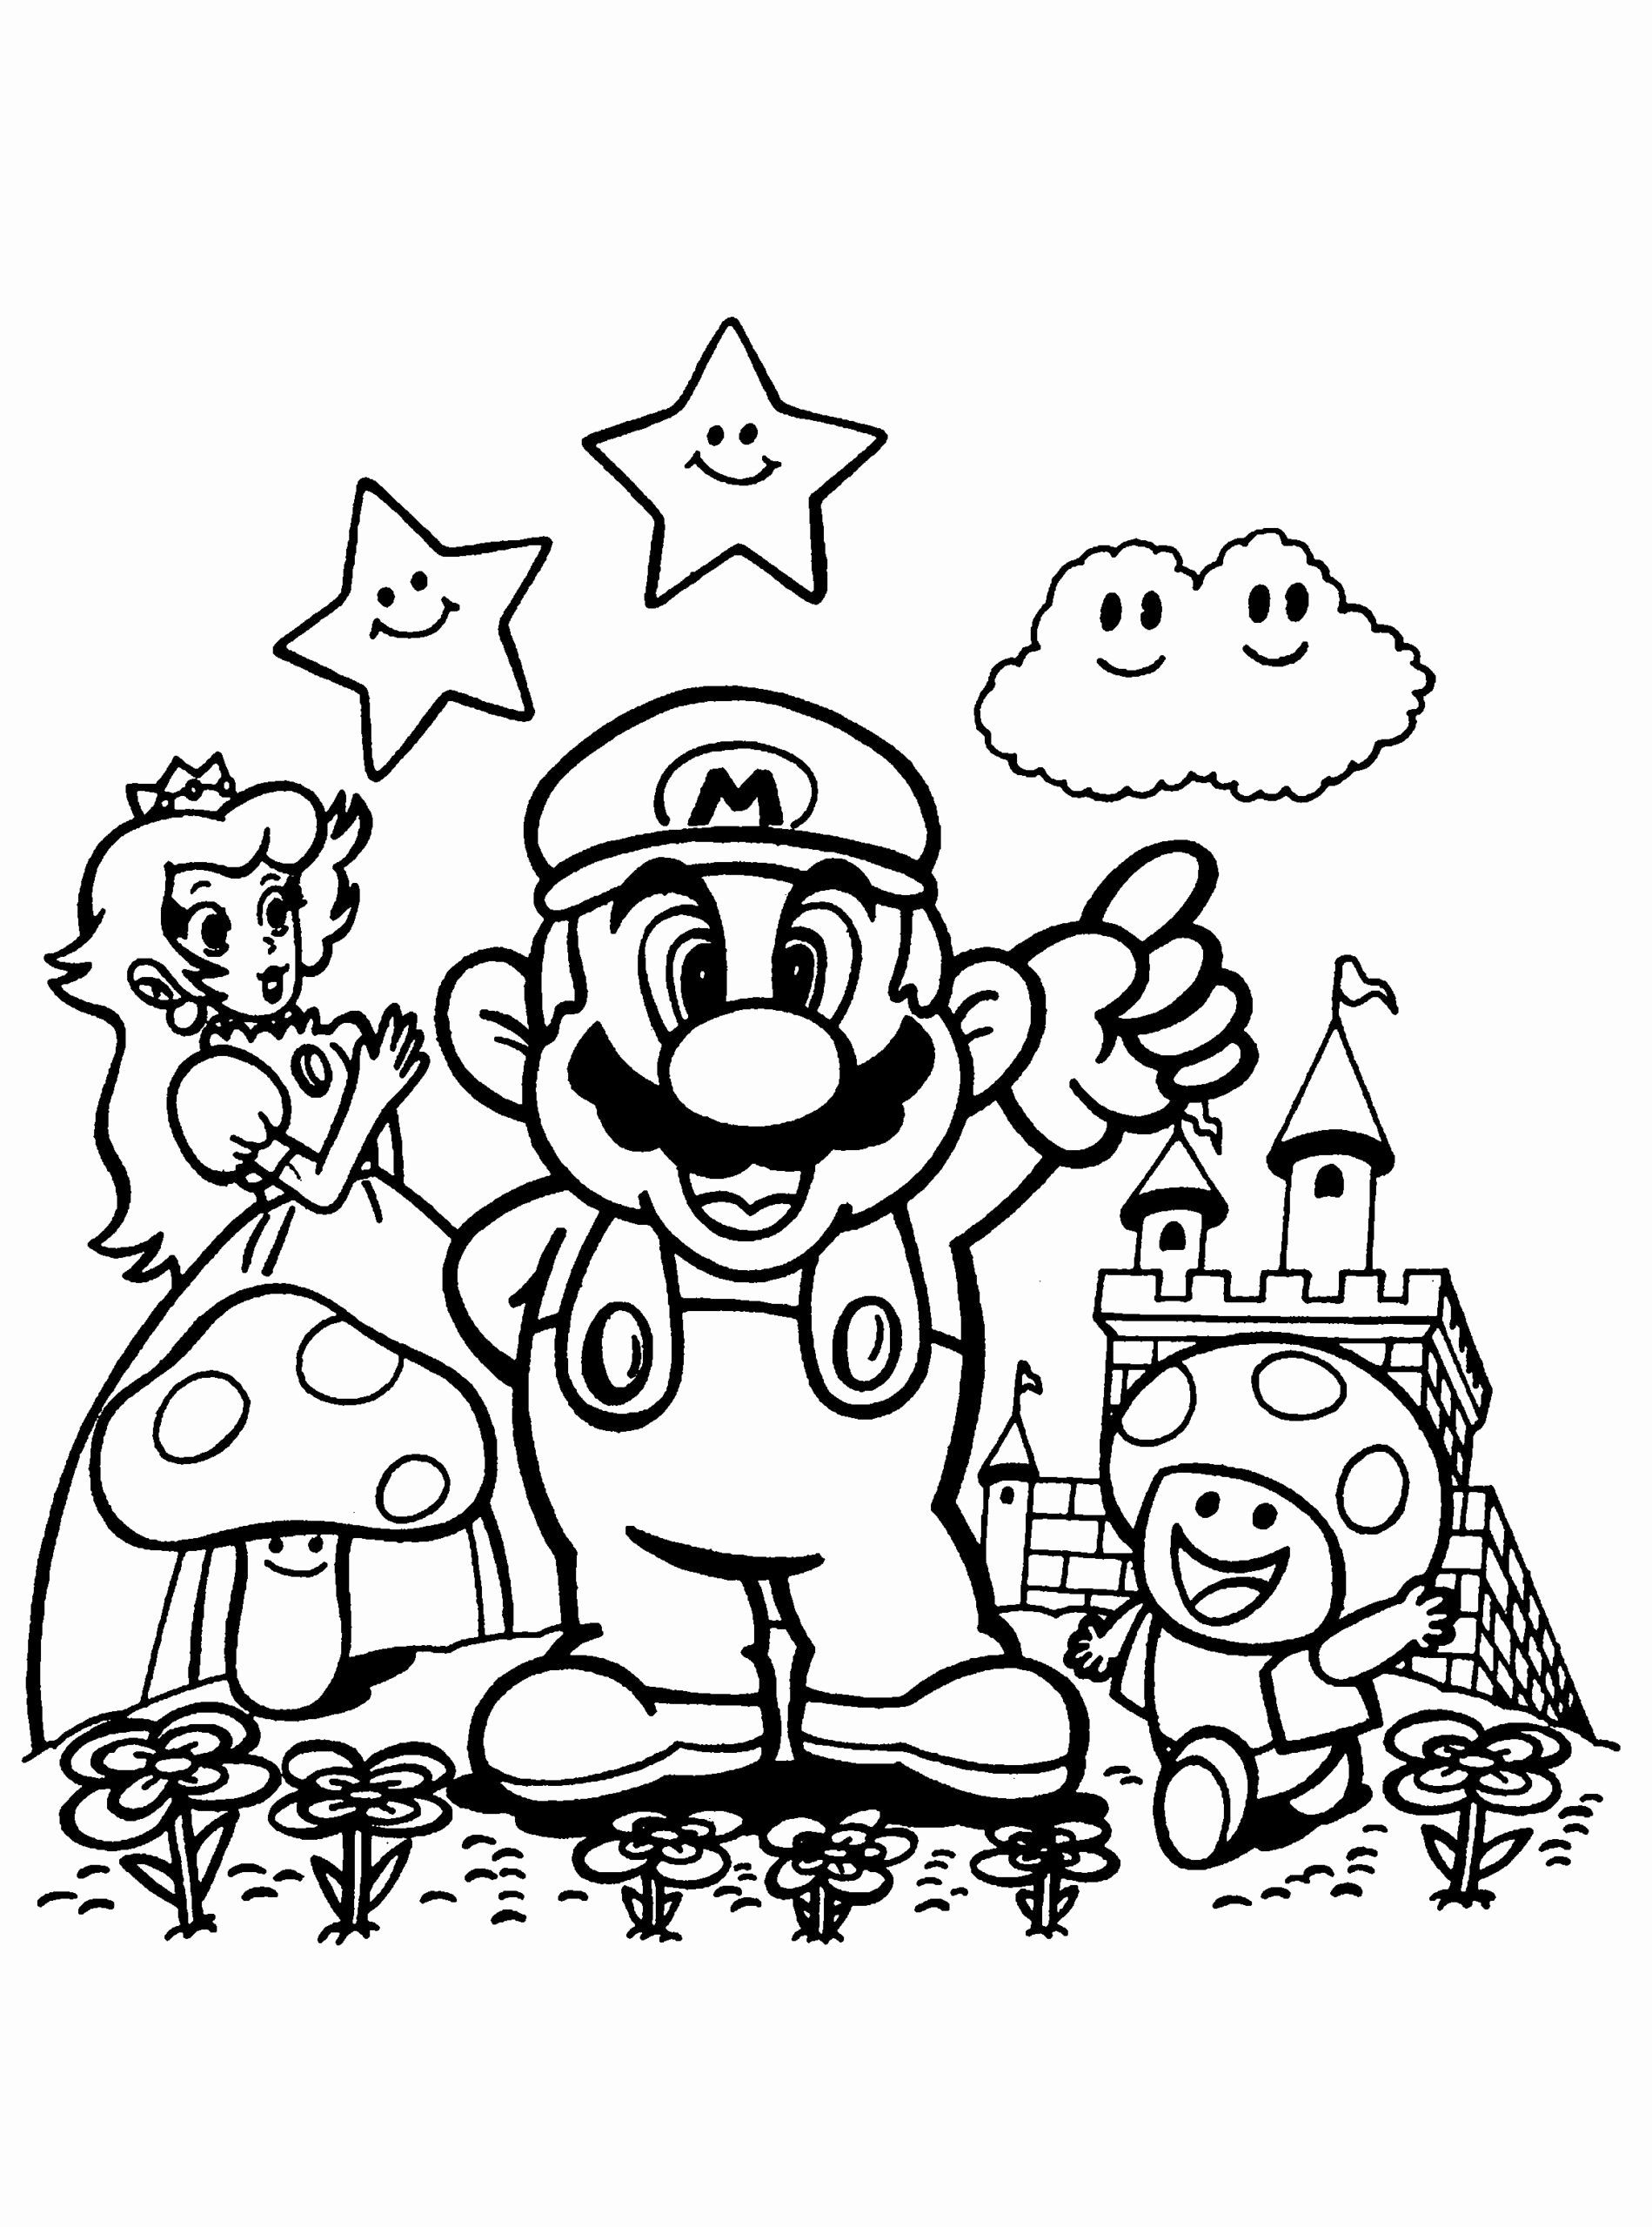 Coloring Worksheets For 3rd Grade Inspirational Coloring Page For Kids Top Preeminent Super Mari Super Mario Coloring Pages Mario Coloring Pages Coloring Books